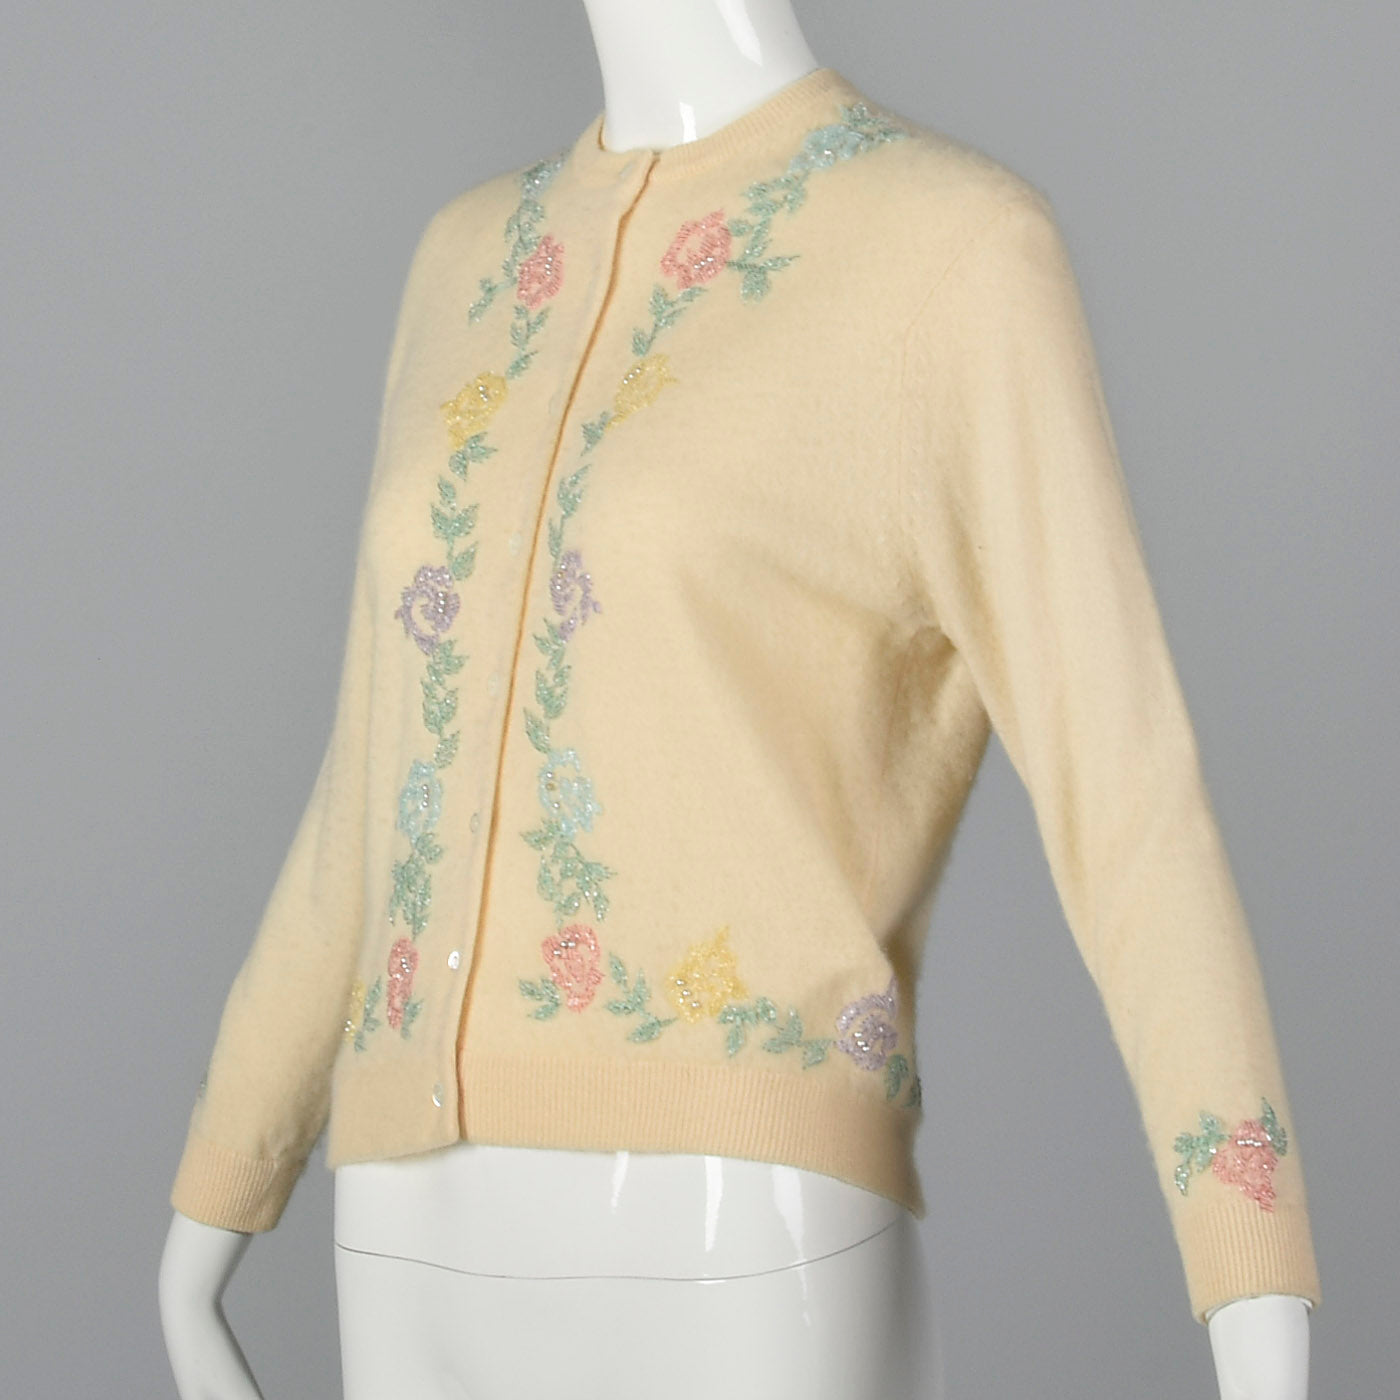 1960s 100% Cashmere Beaded Cardigan